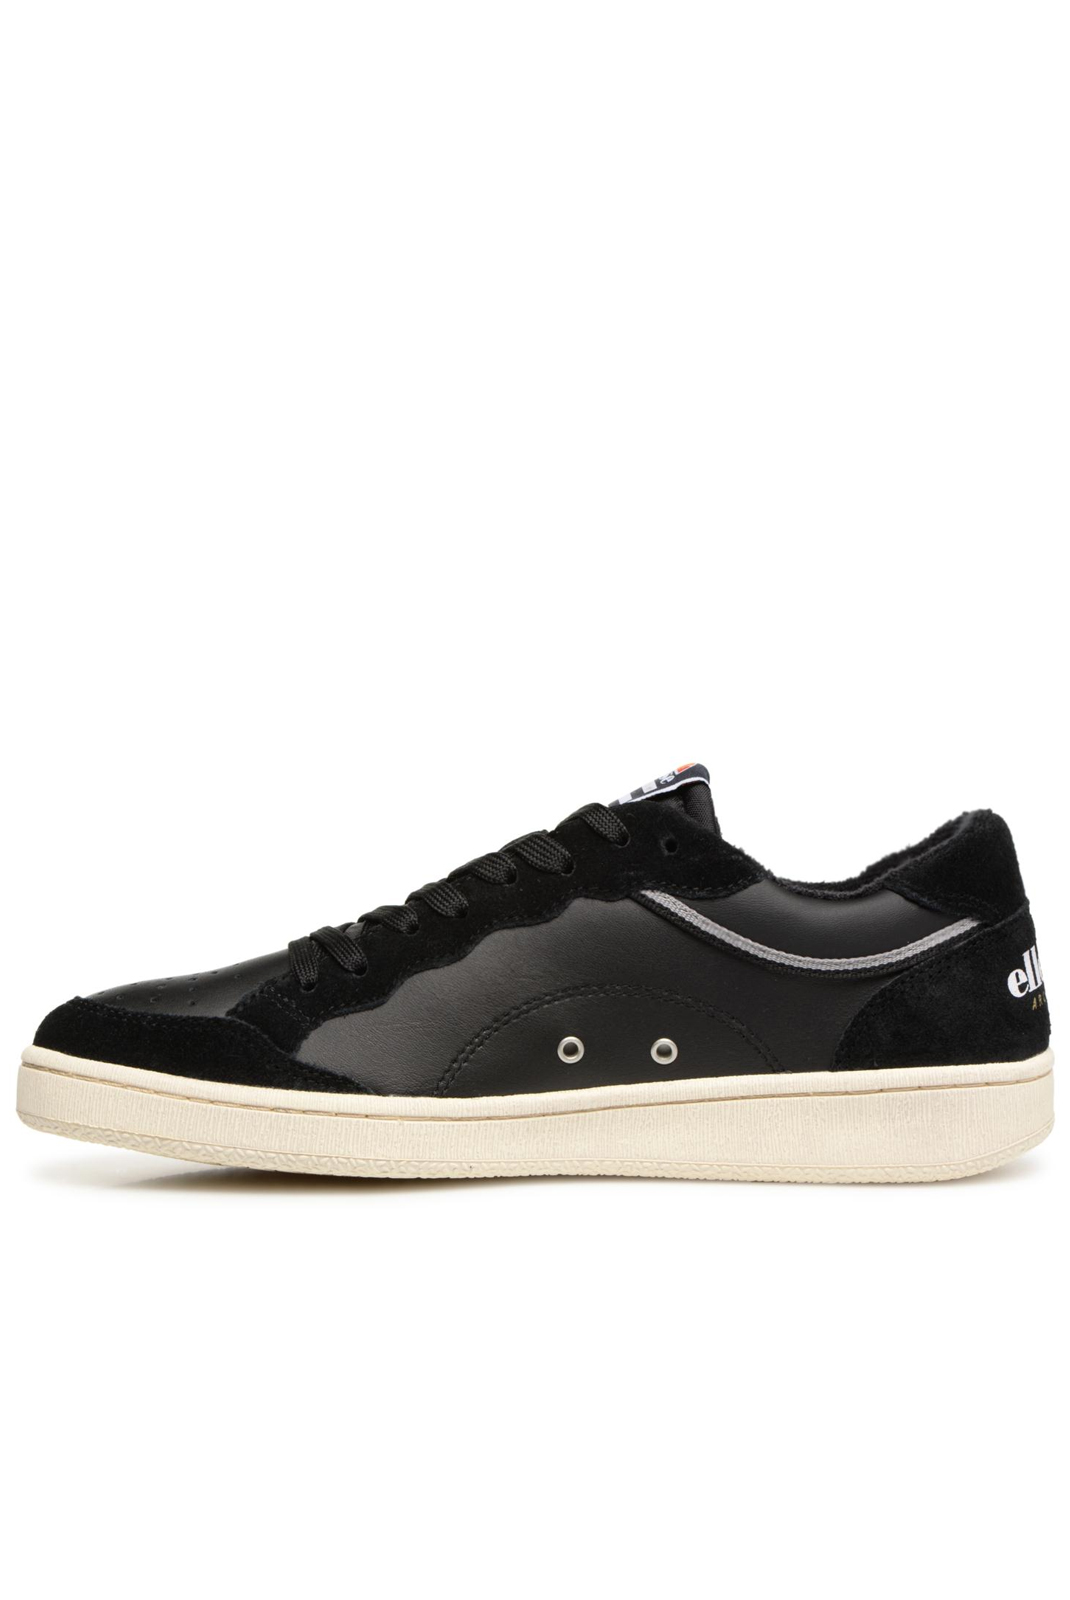 Baskets / Sport  Ellesse EL82440 H 03 BLACK